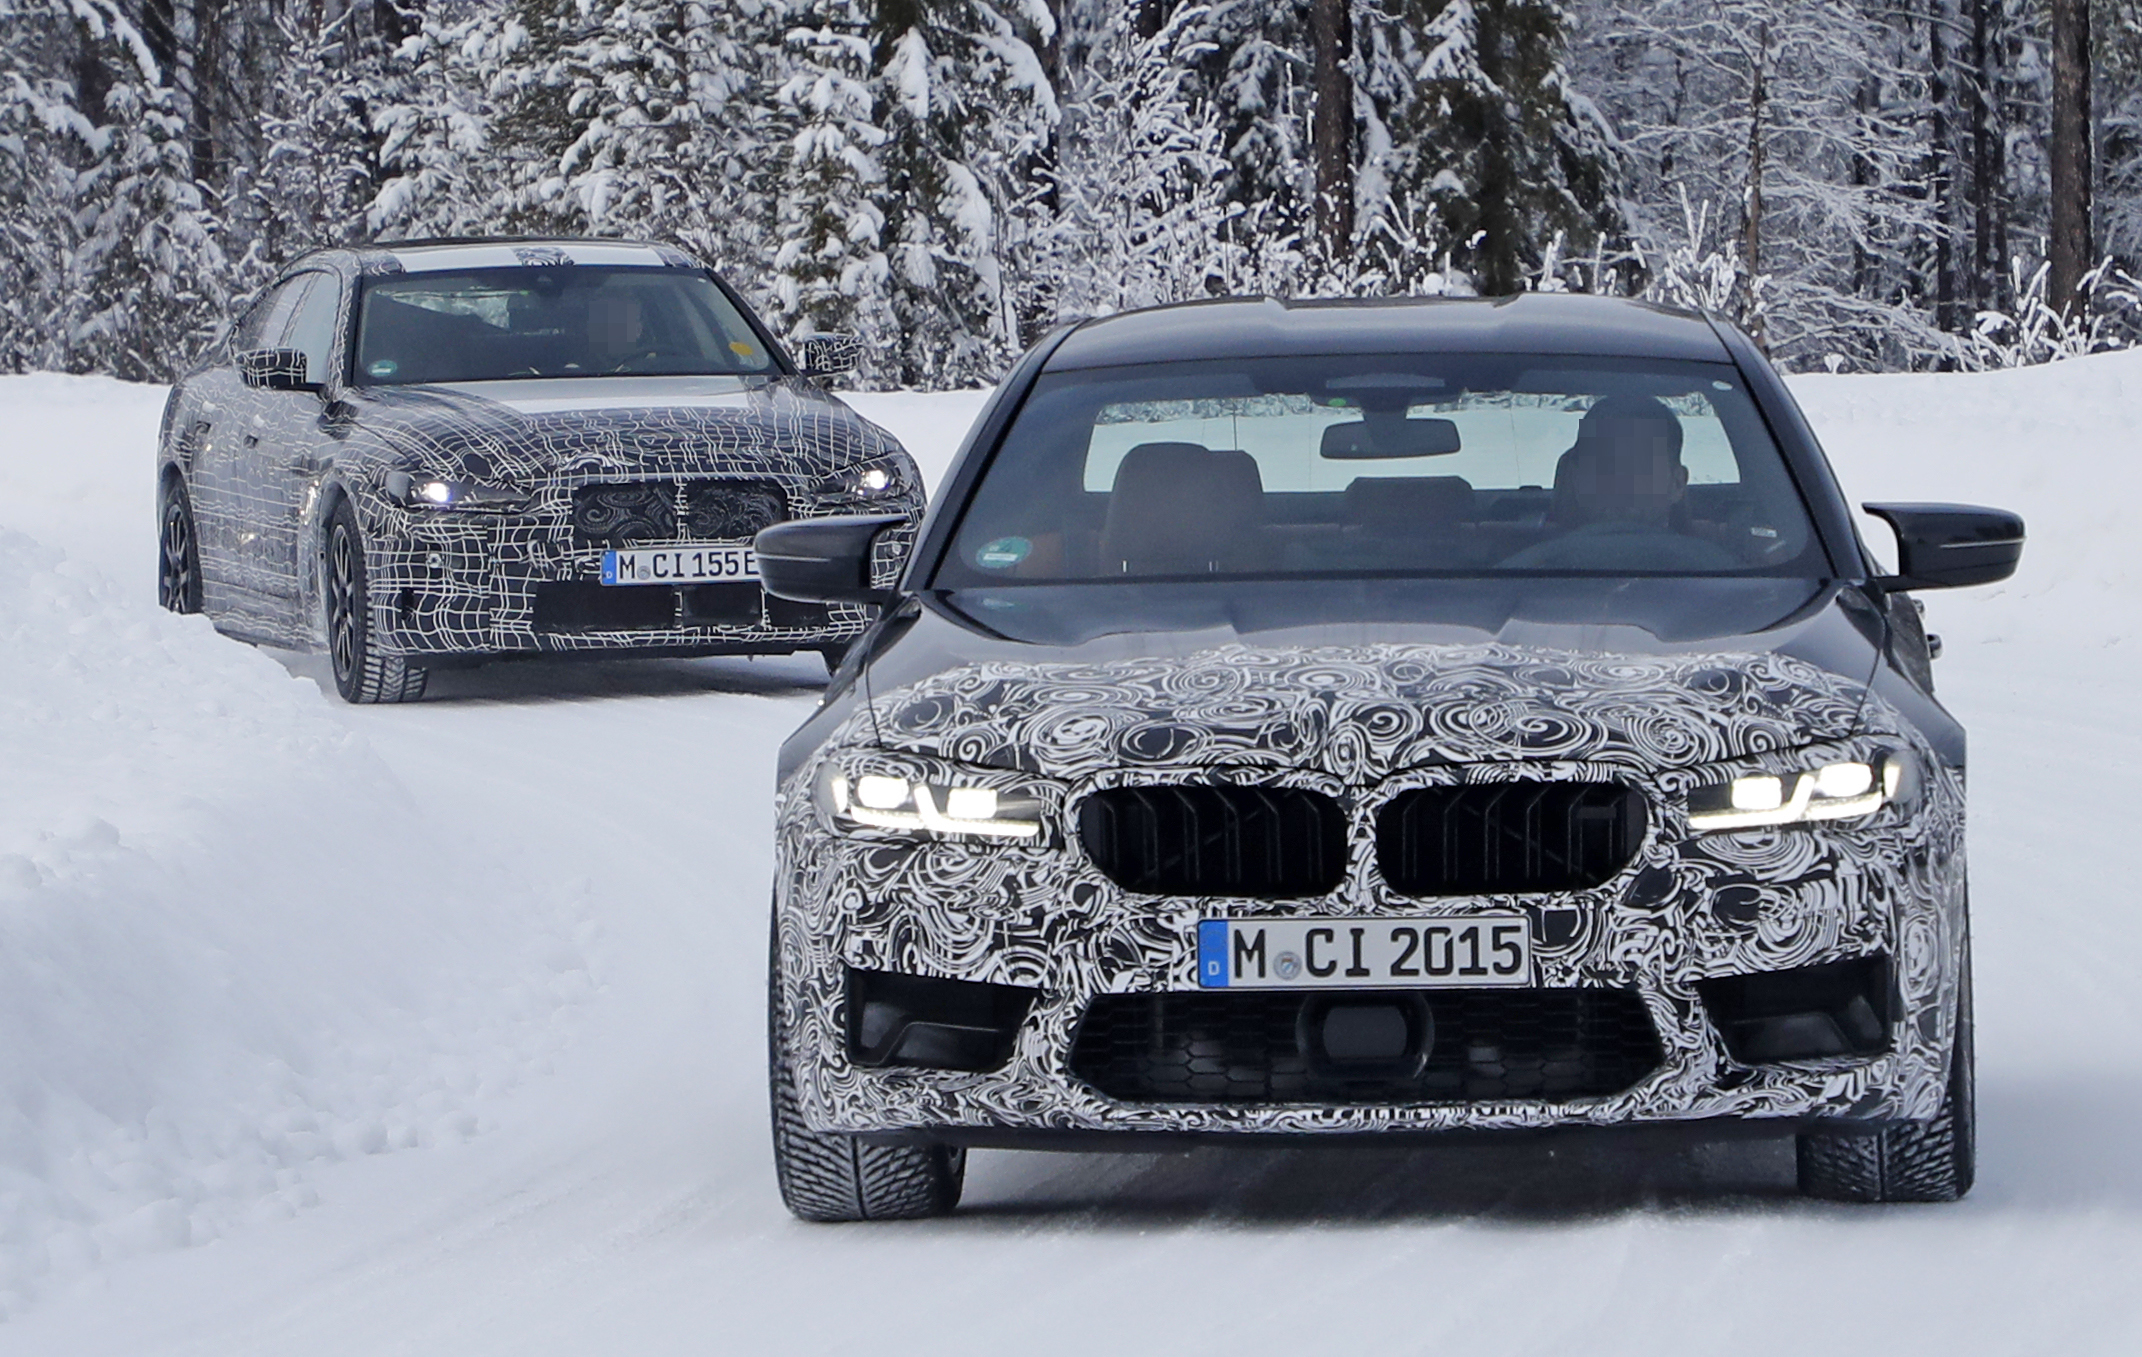 2021 Bmw M5 Spy Shots And Review